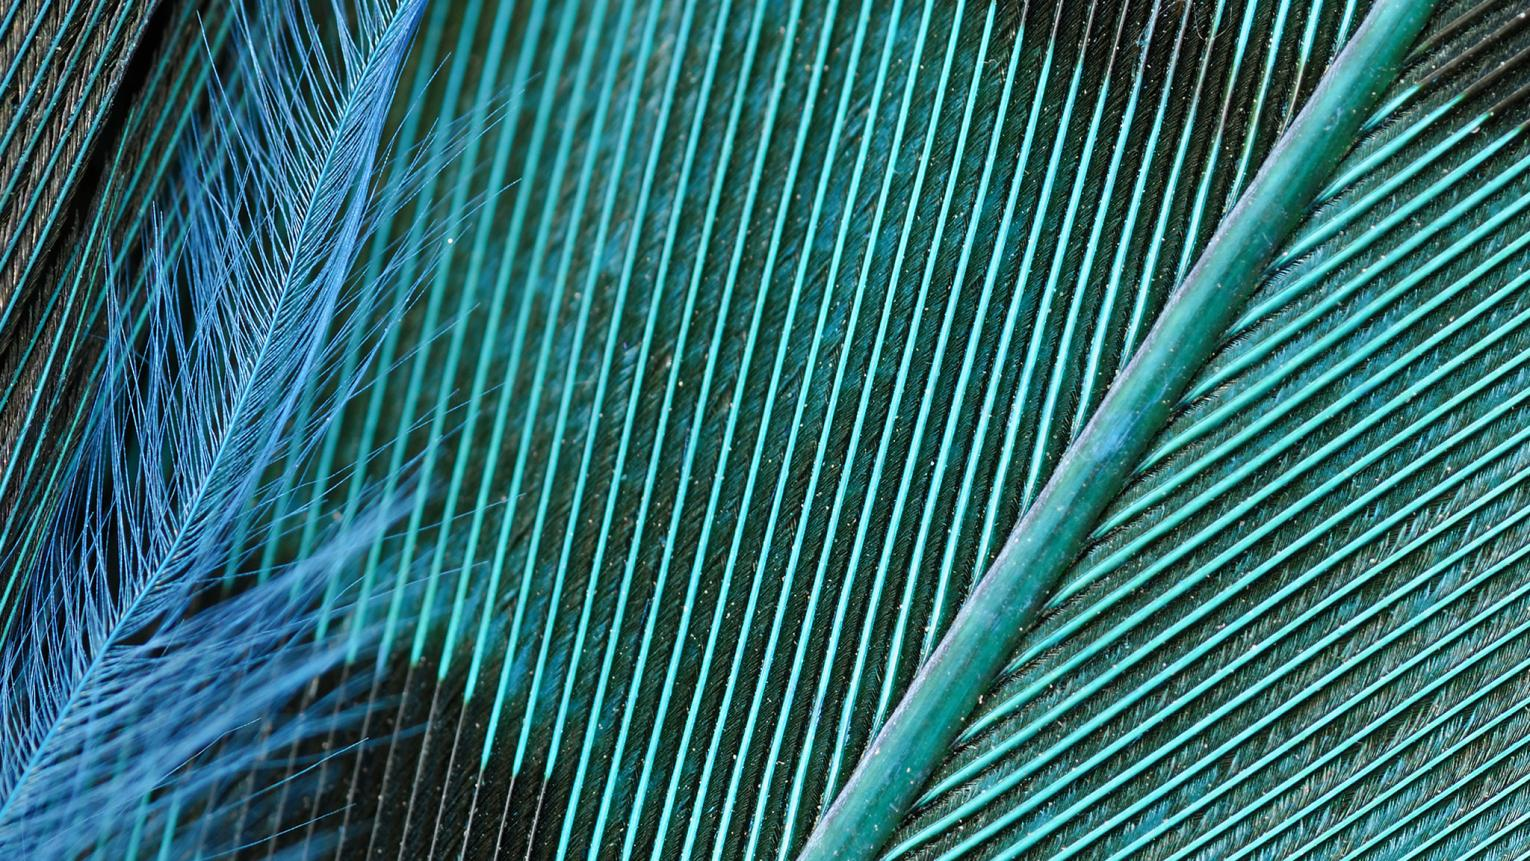 Close-up of a striking teal bird's feather